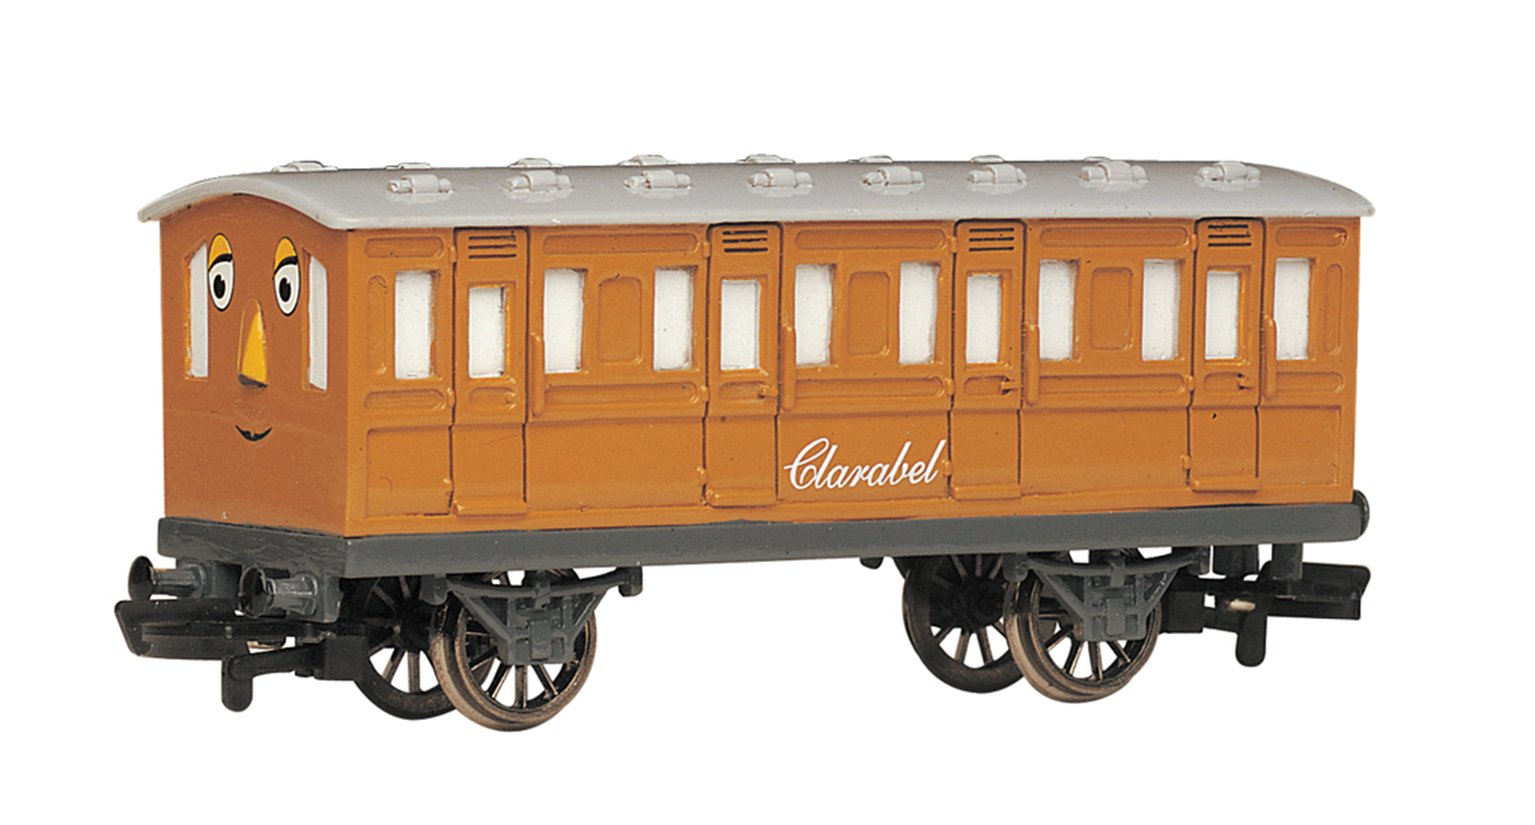 Thomas & Friends Clarabel Carriage